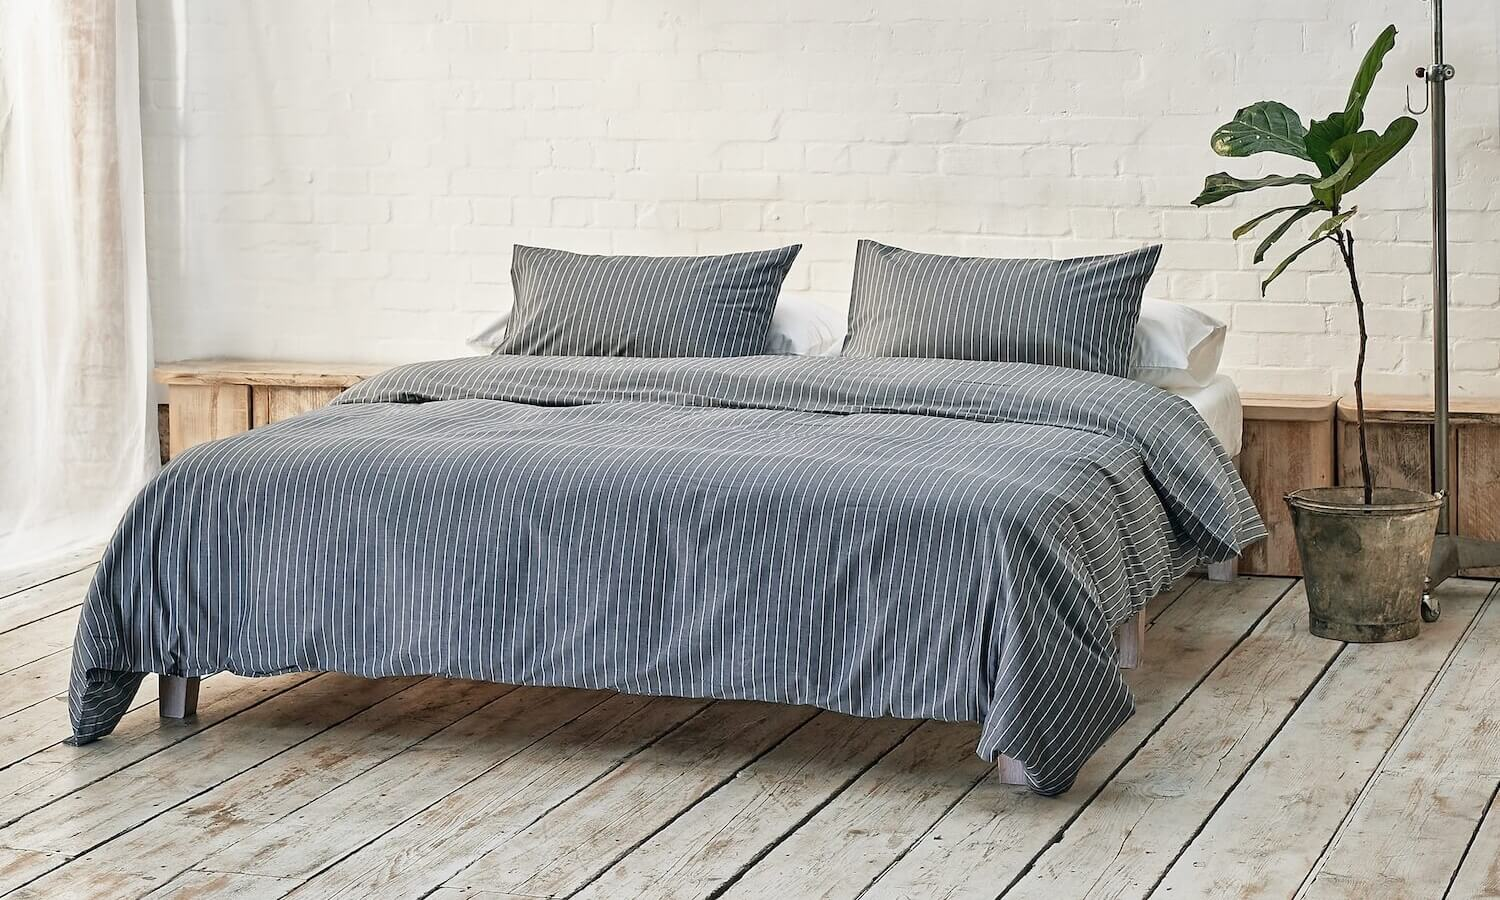 navy and white striped bedding on bed in a modern room